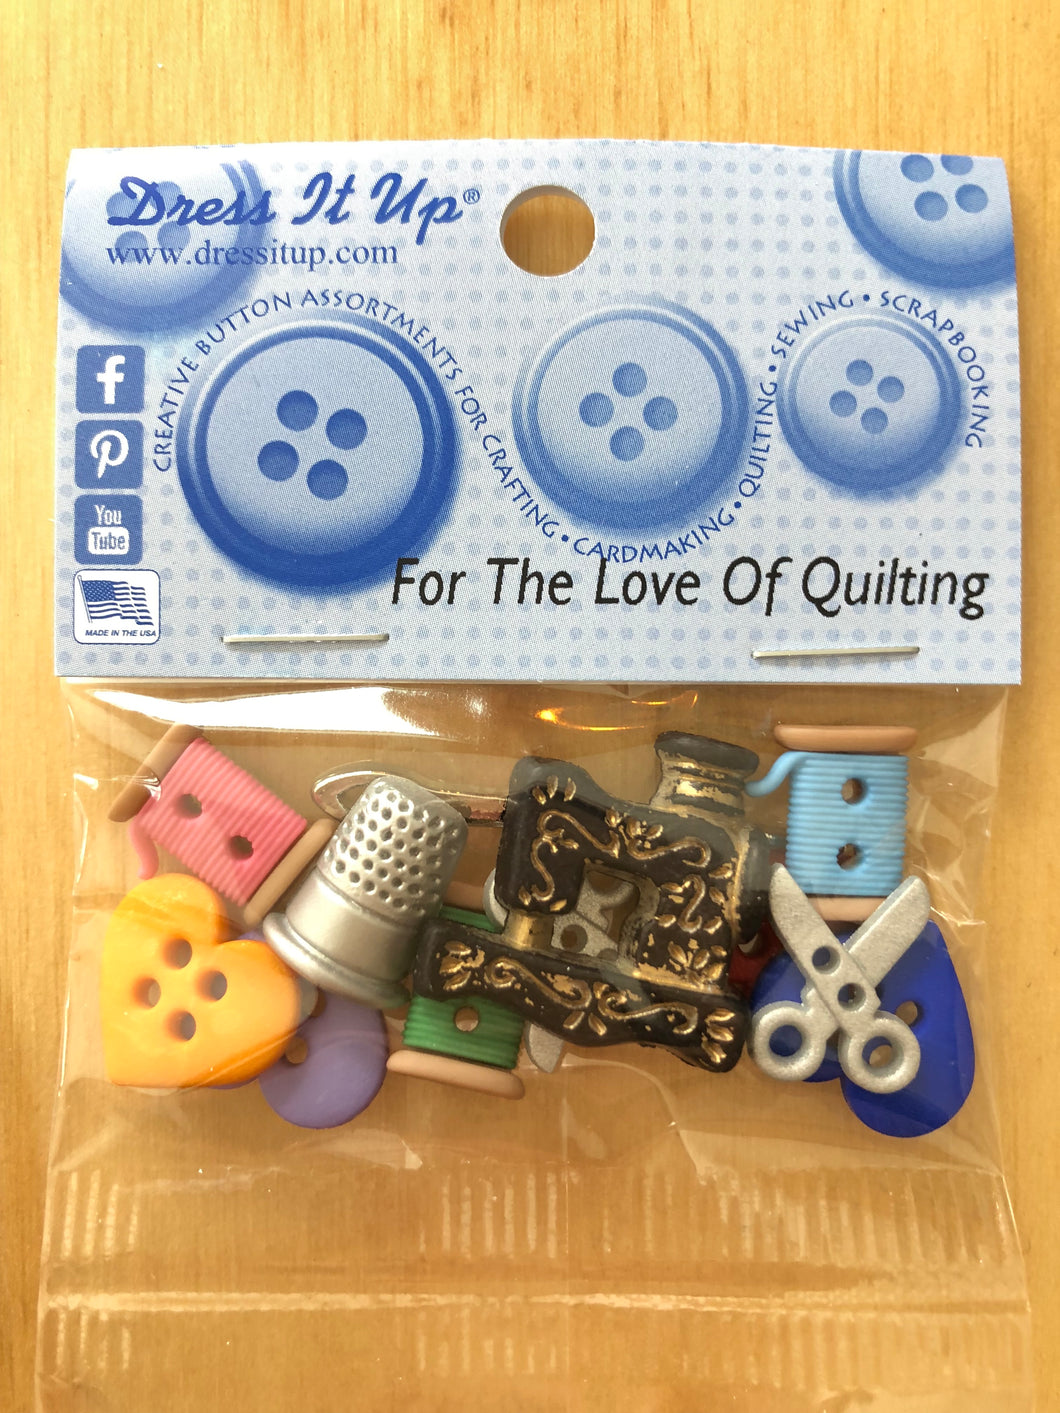 For the Love Of Quilting